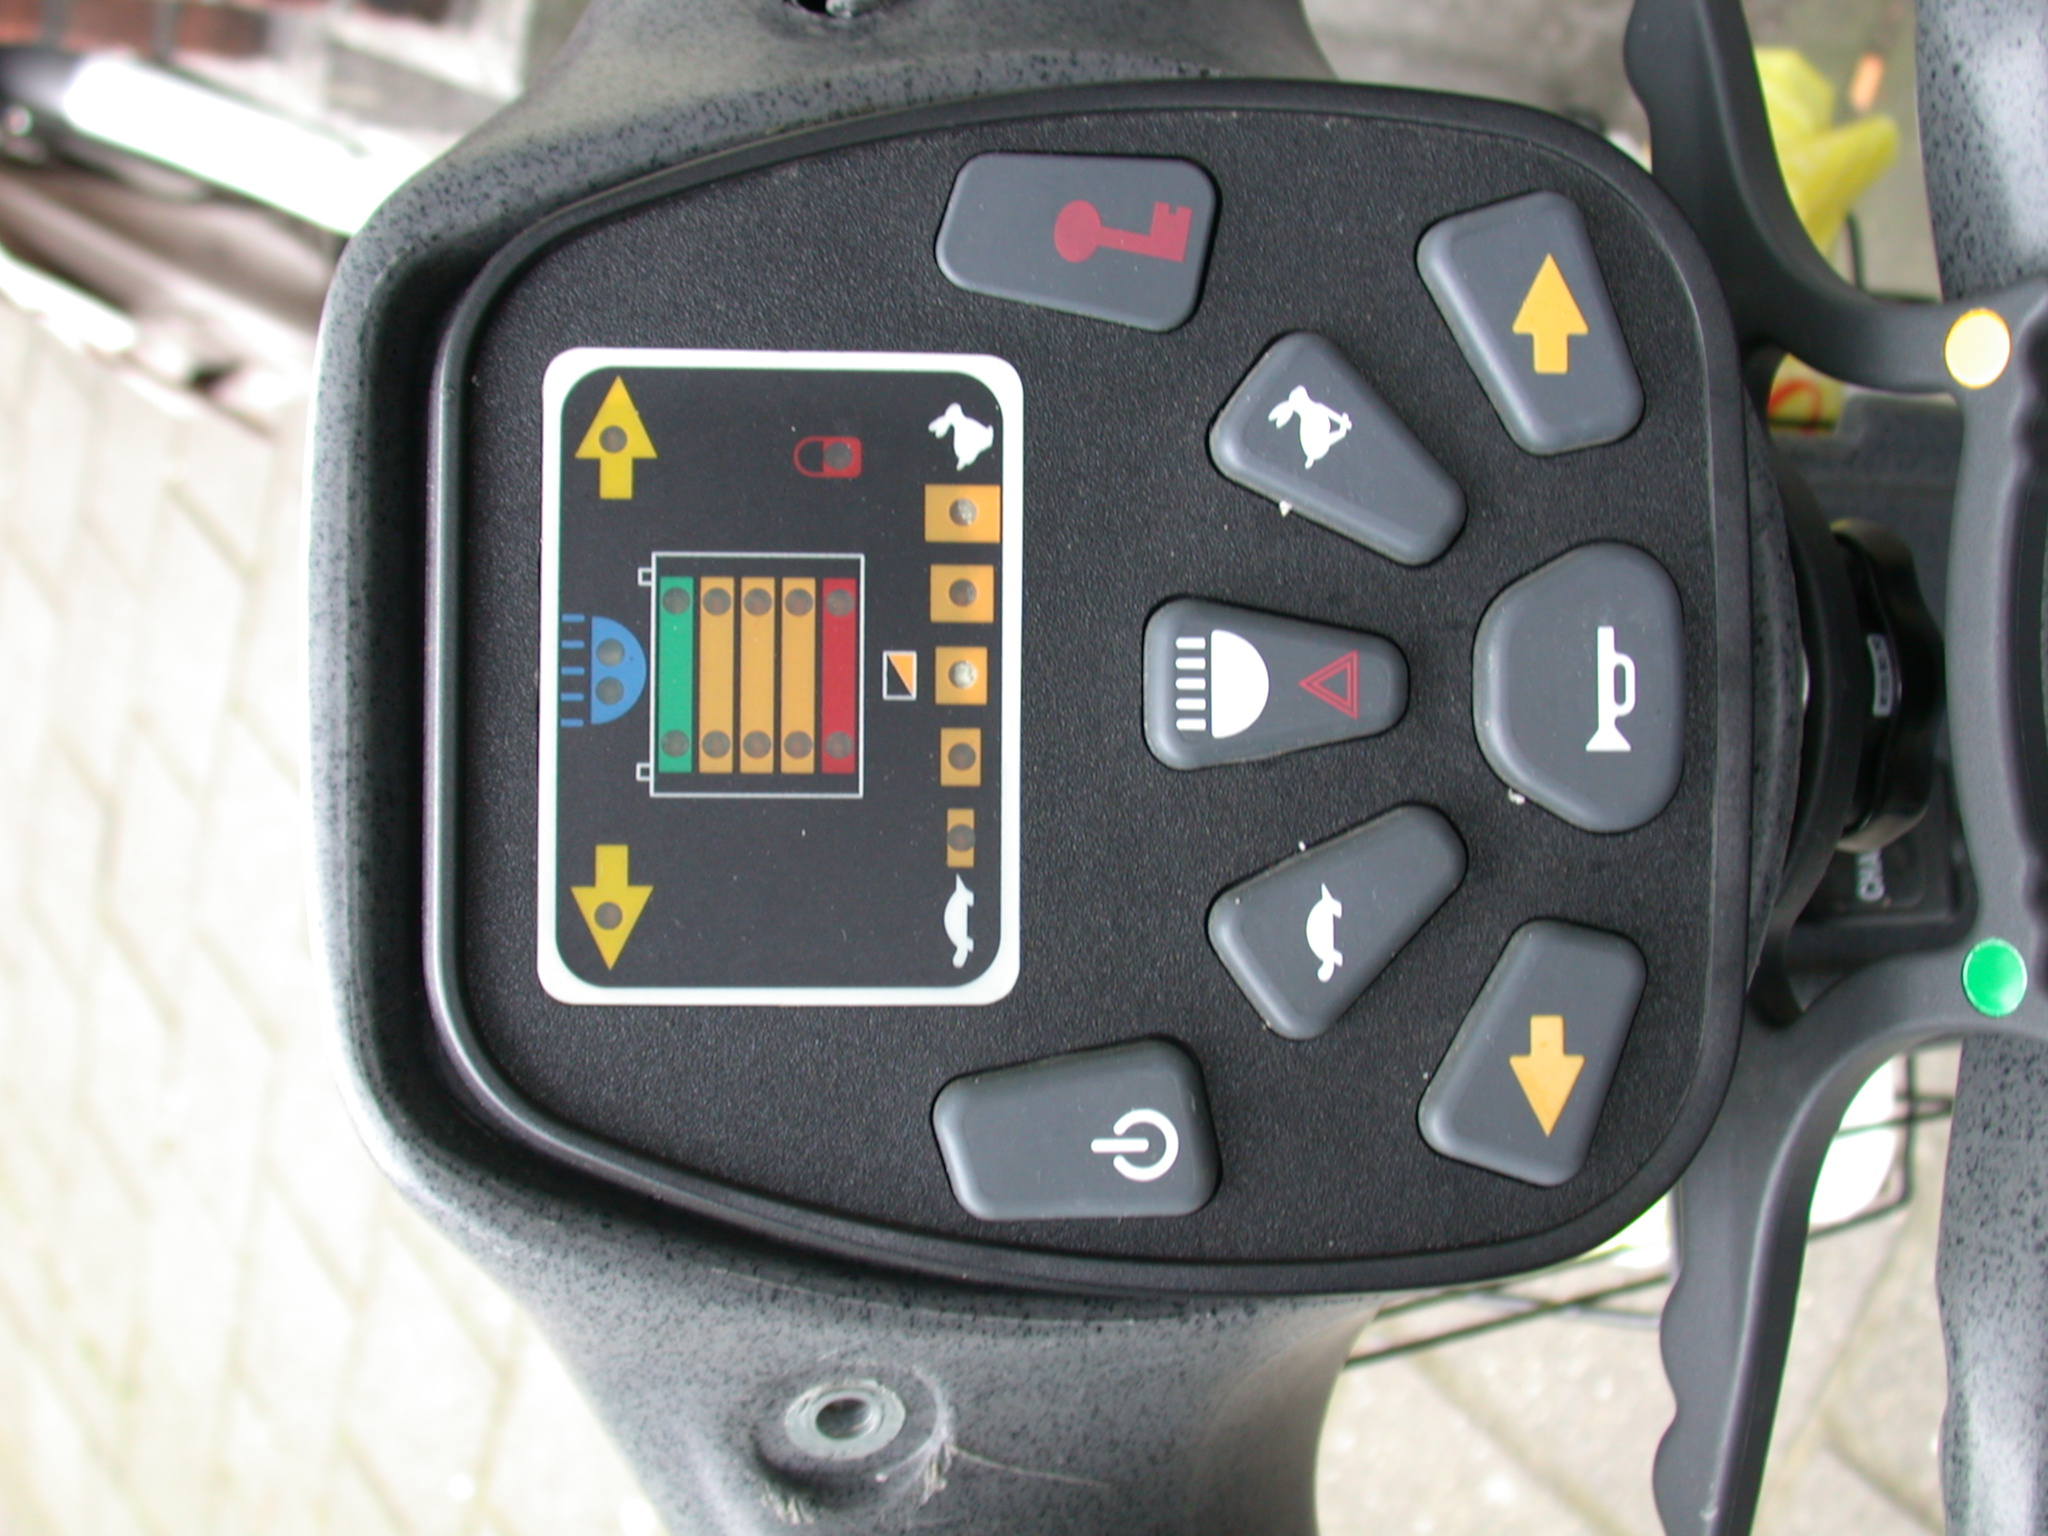 controles buttons conole direction speed electrical cart